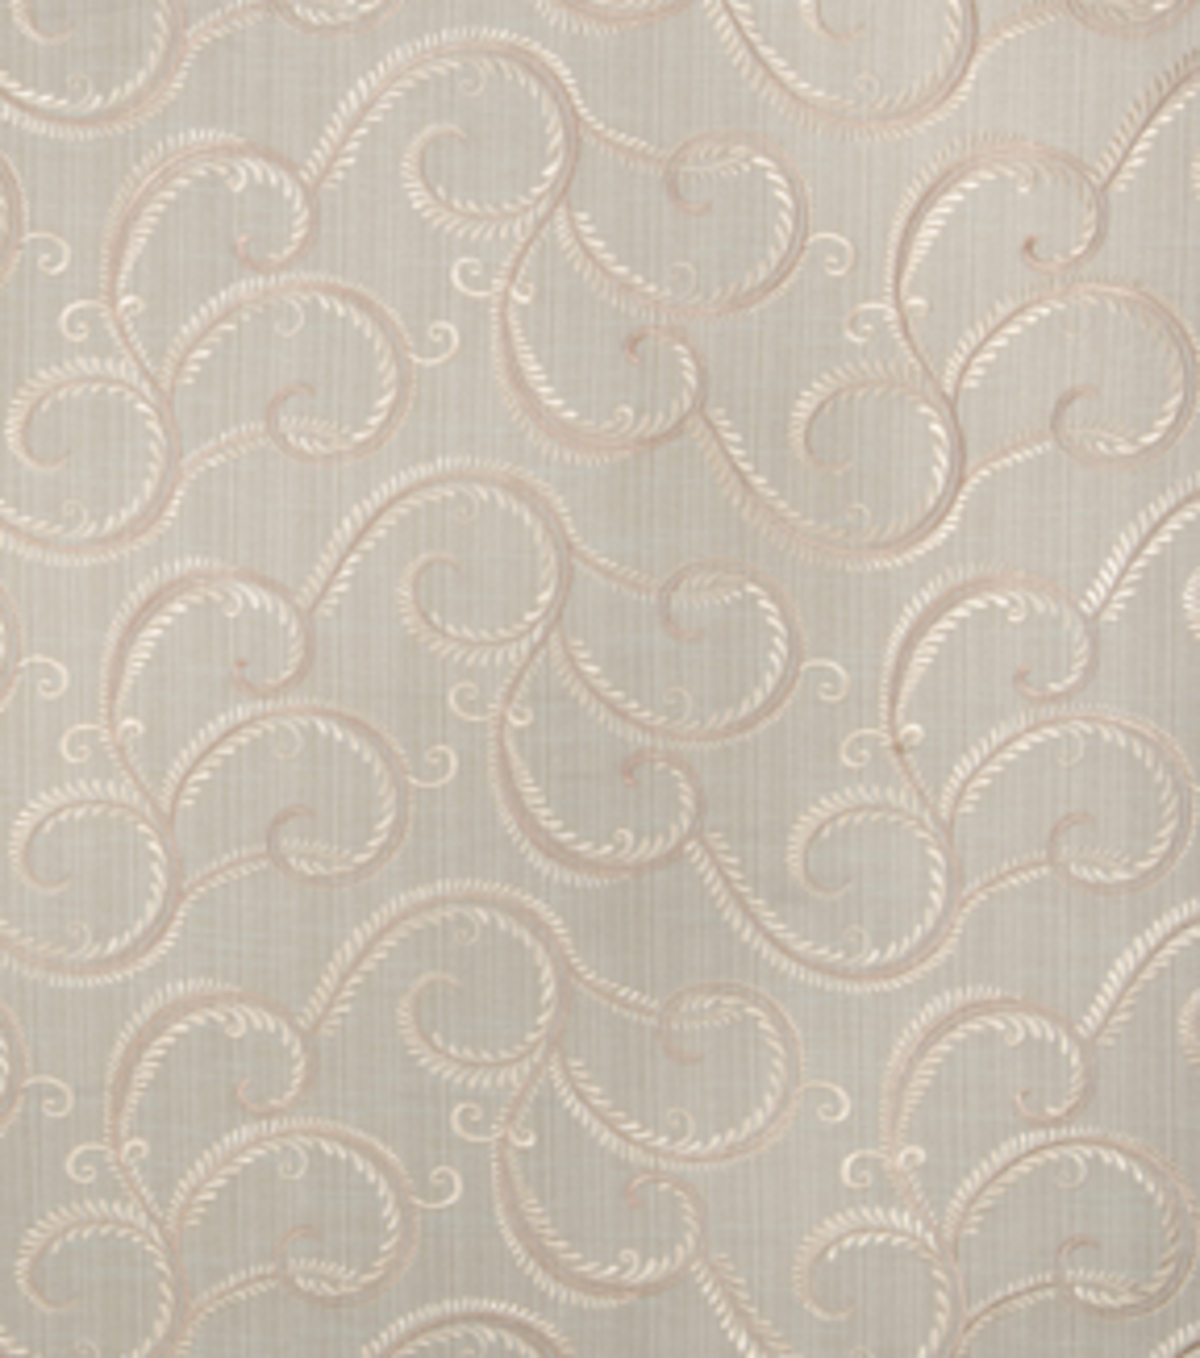 Home Decor 8\u0022x8\u0022 Fabric Swatch-Eaton Square Adair /  Haze